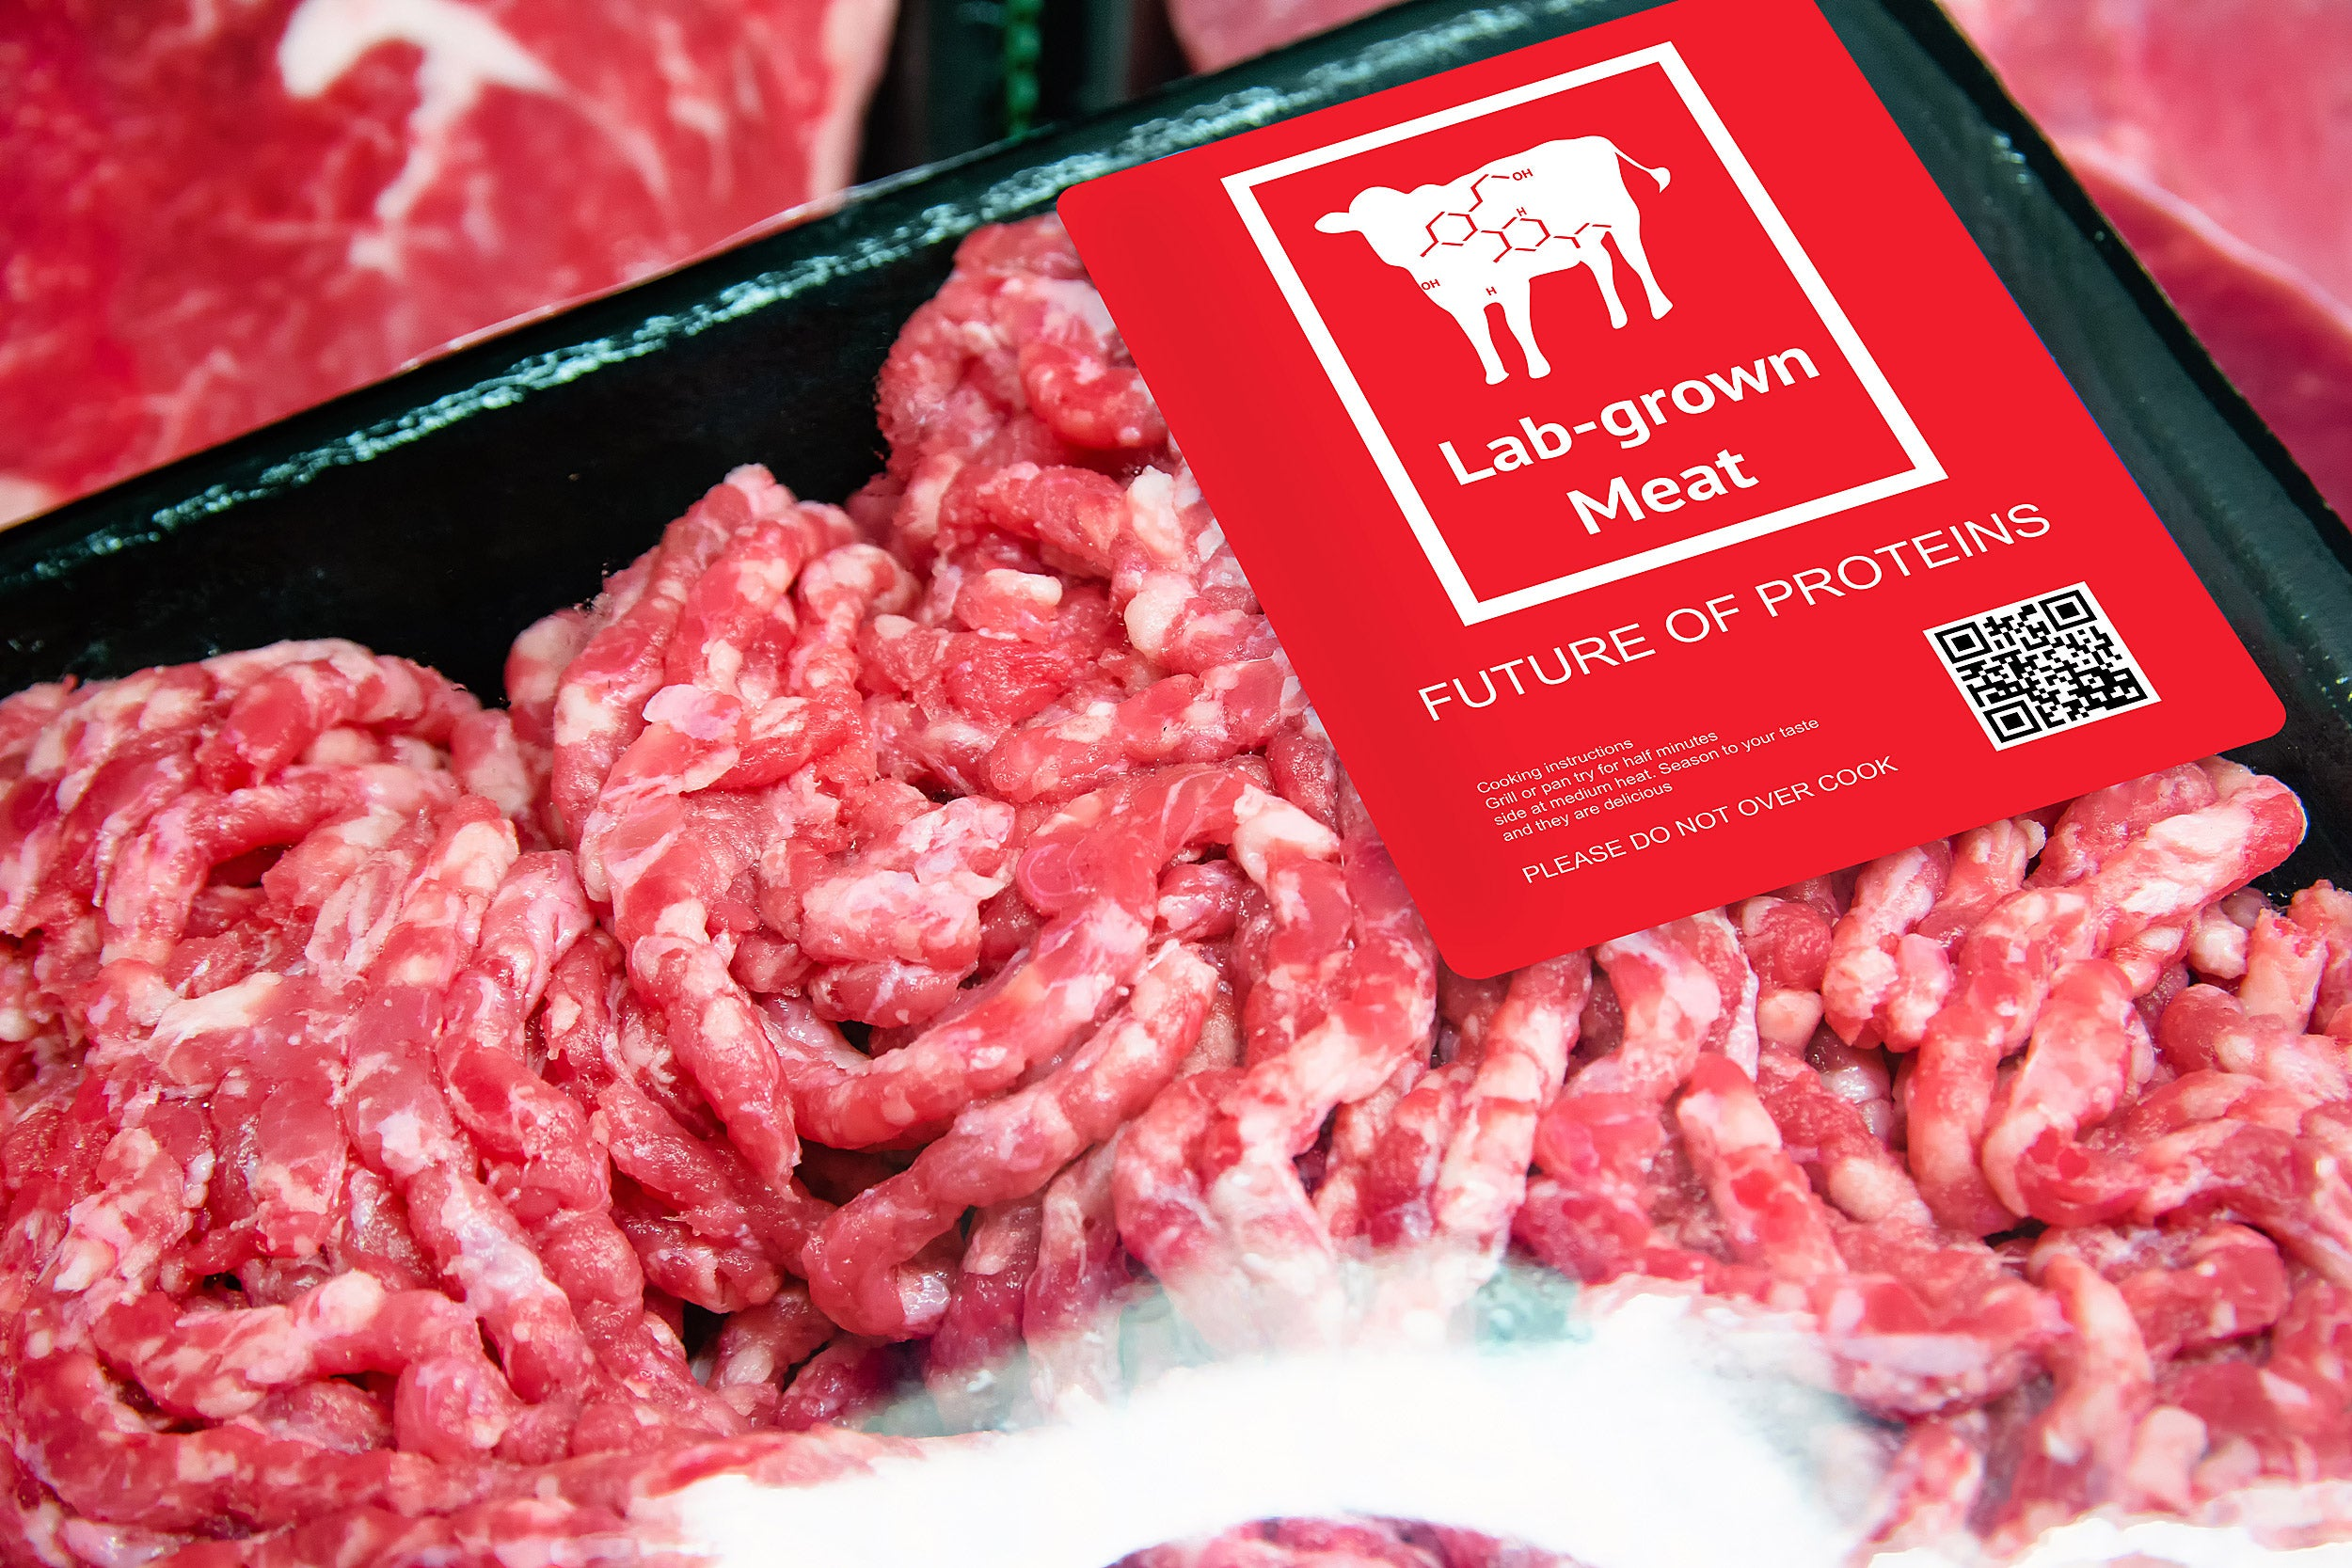 Package of lab-grown meat.